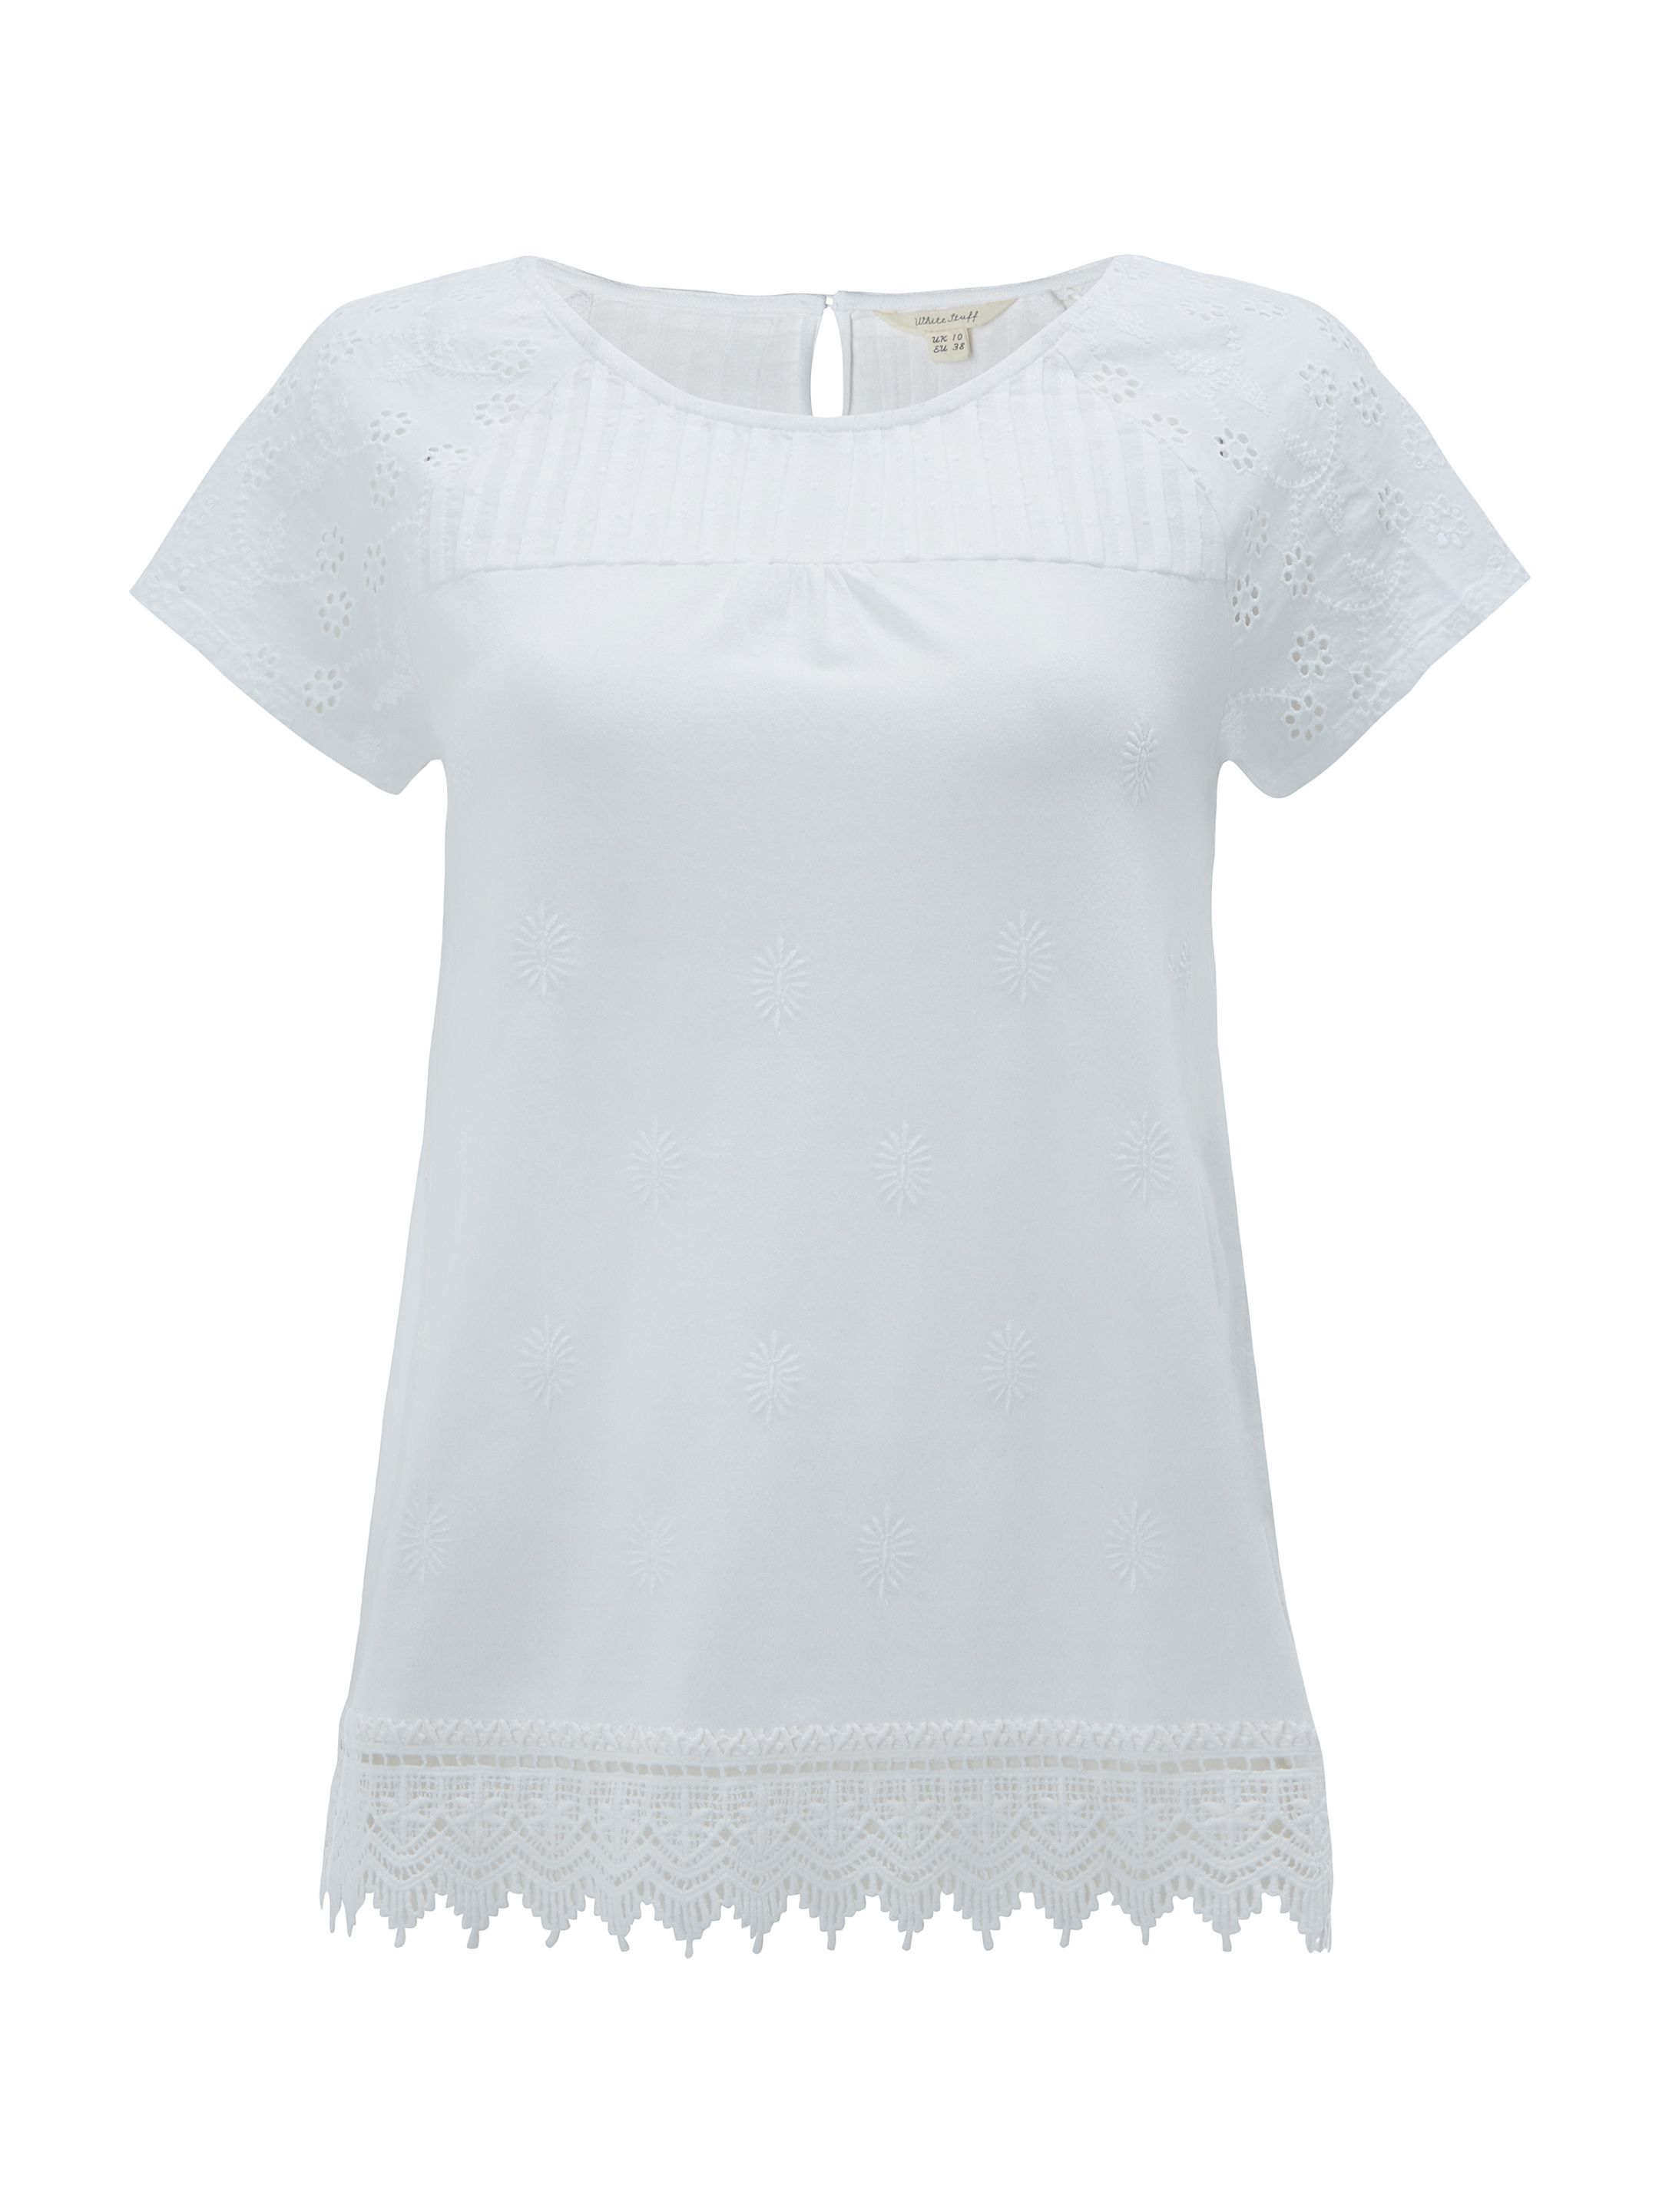 White Stuff Isla Lace Jersey Tee, White